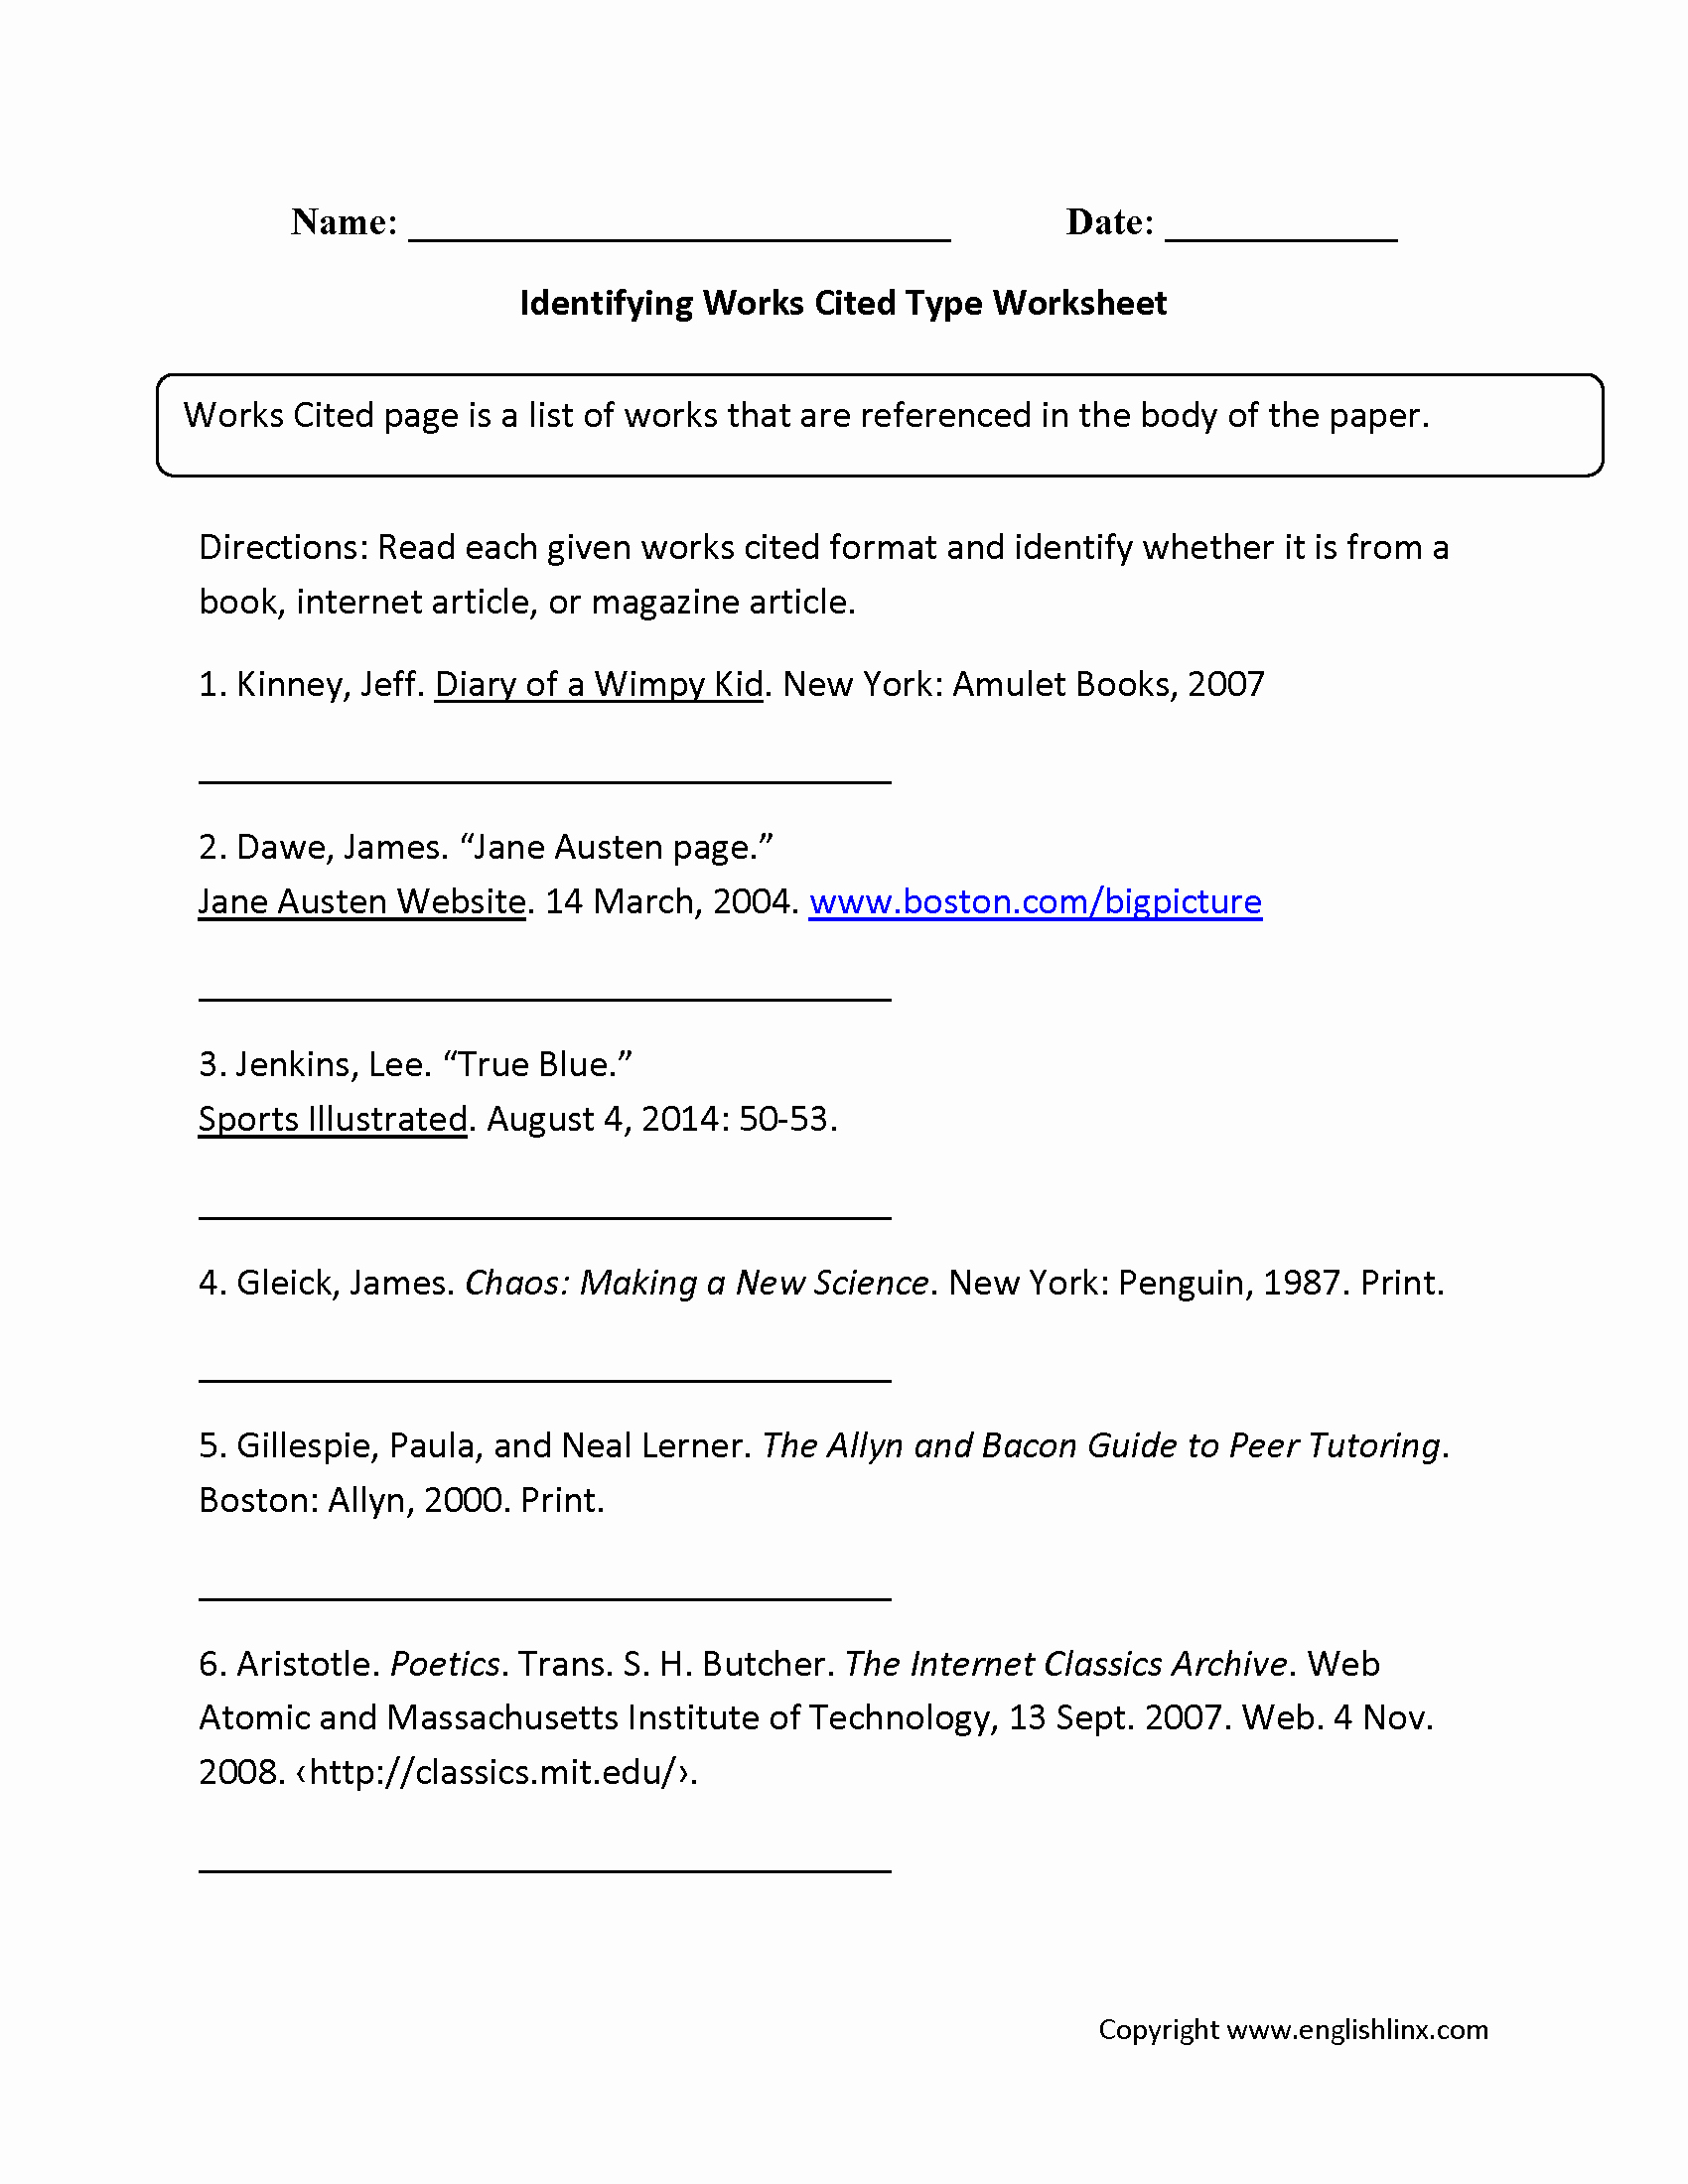 Bibliography Practice Worksheets New Identifying Works Cited Worksheets